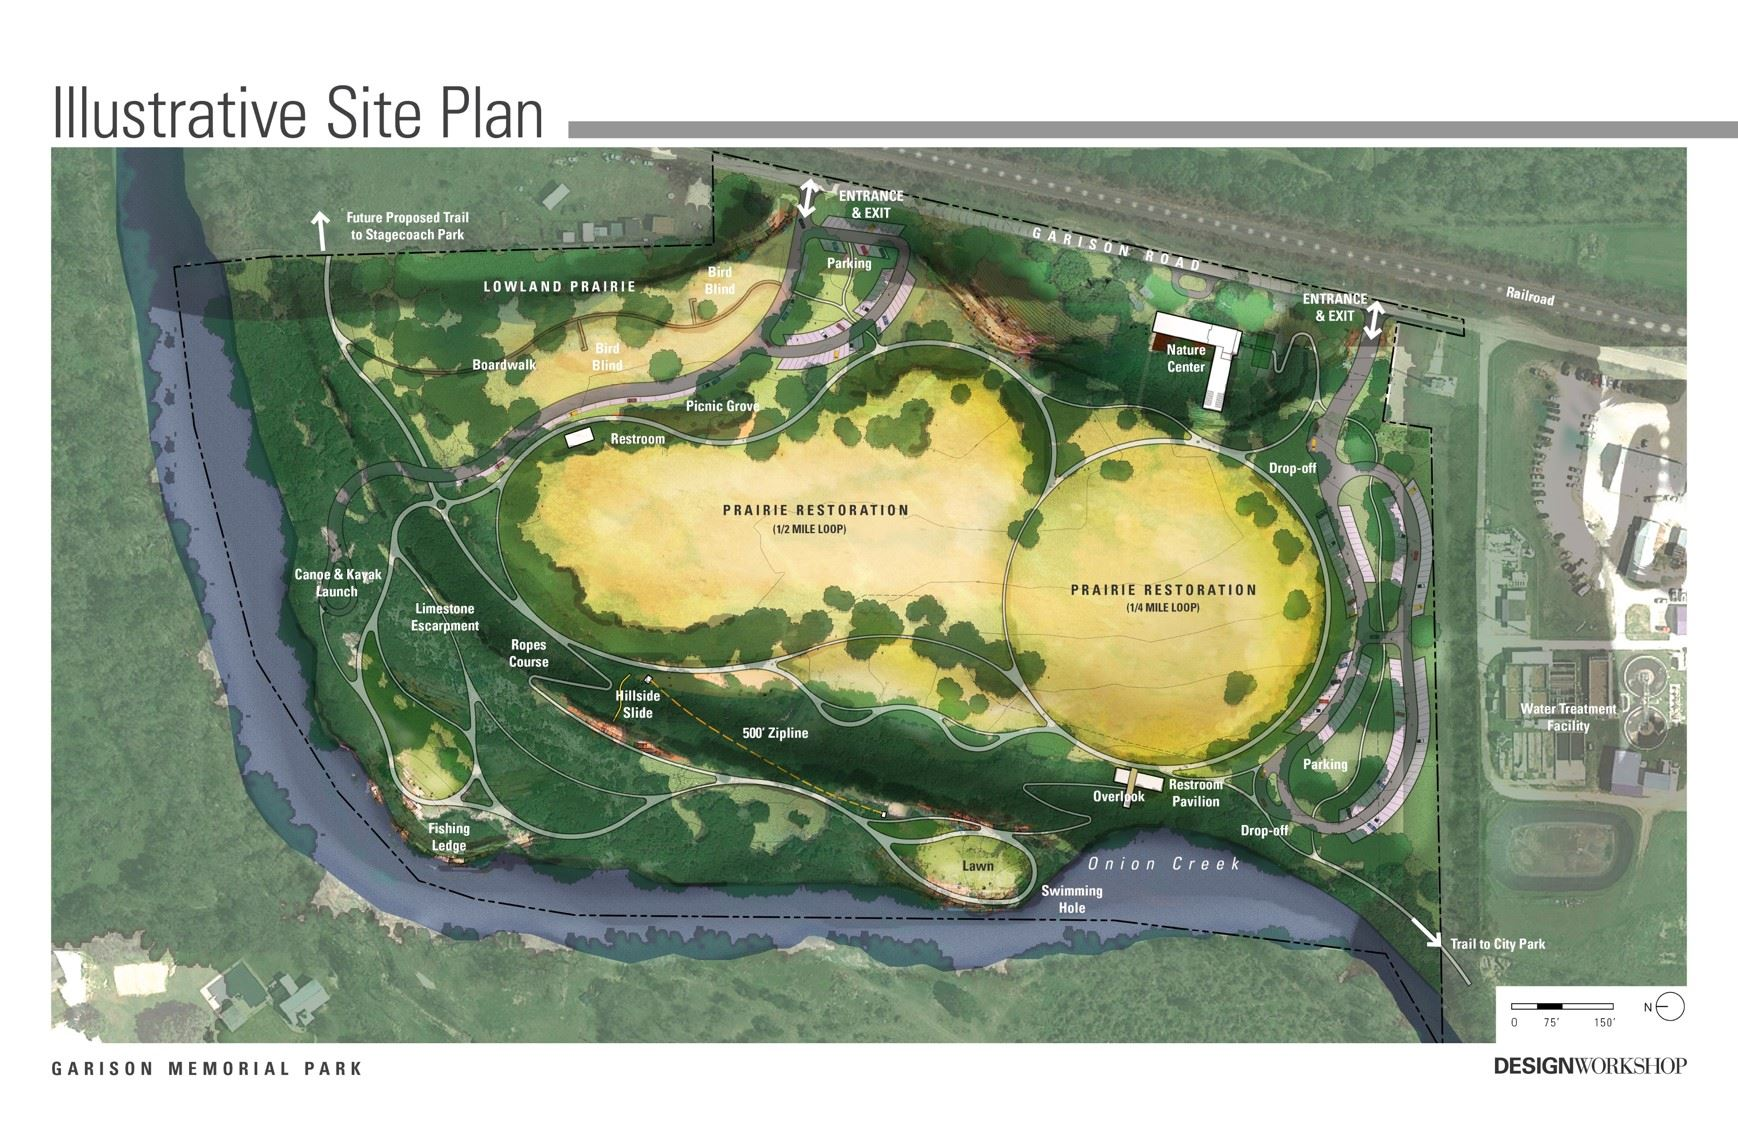 Garison Memorial Park Illustrative Site Plan